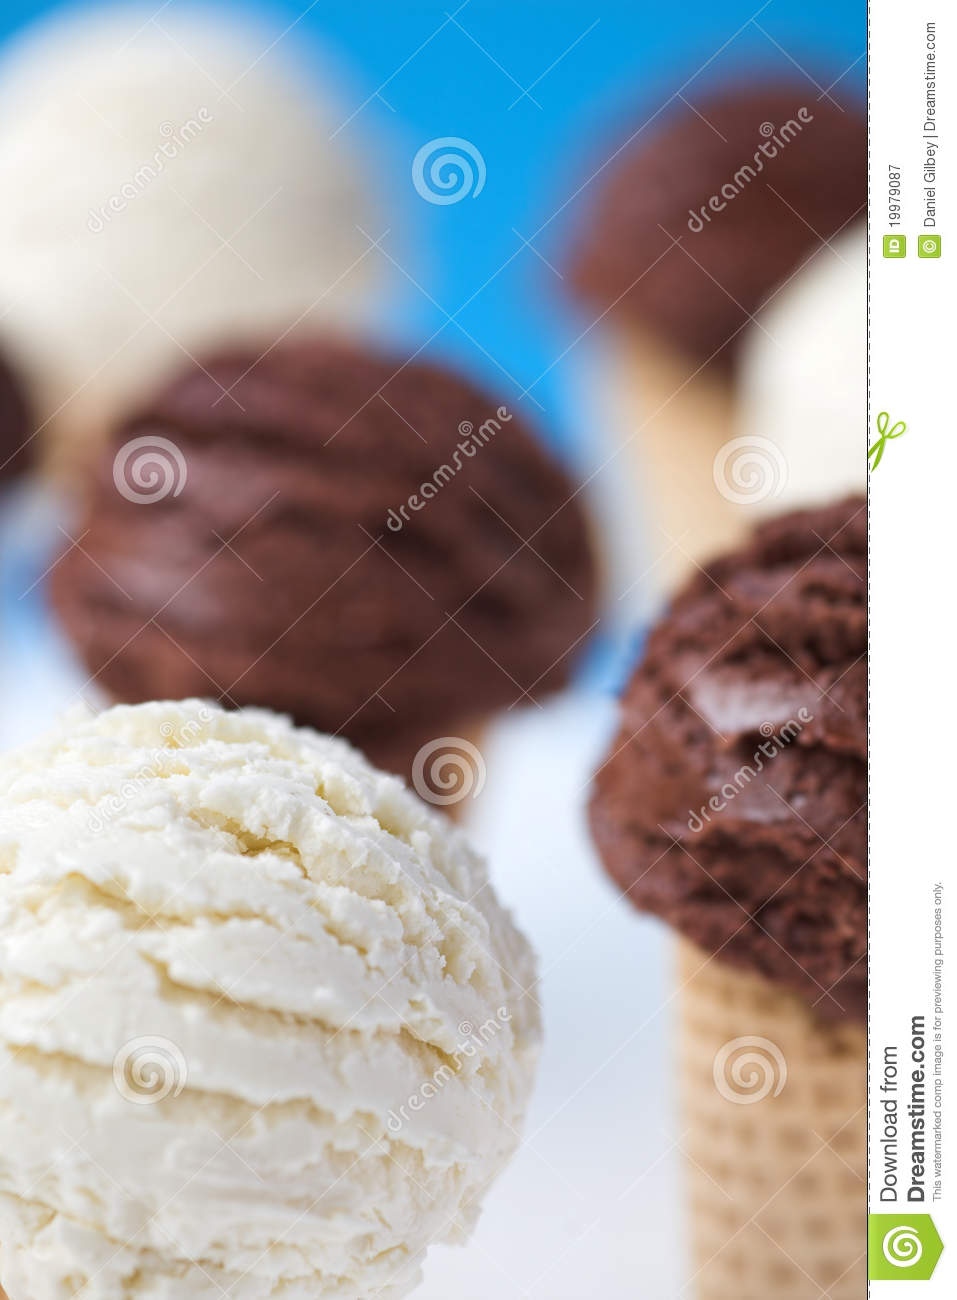 organic ice cream essay Essay about ice cream flavors  market, the world's leading organic food  retailer, adirondack creamery should show its products among many competitors.